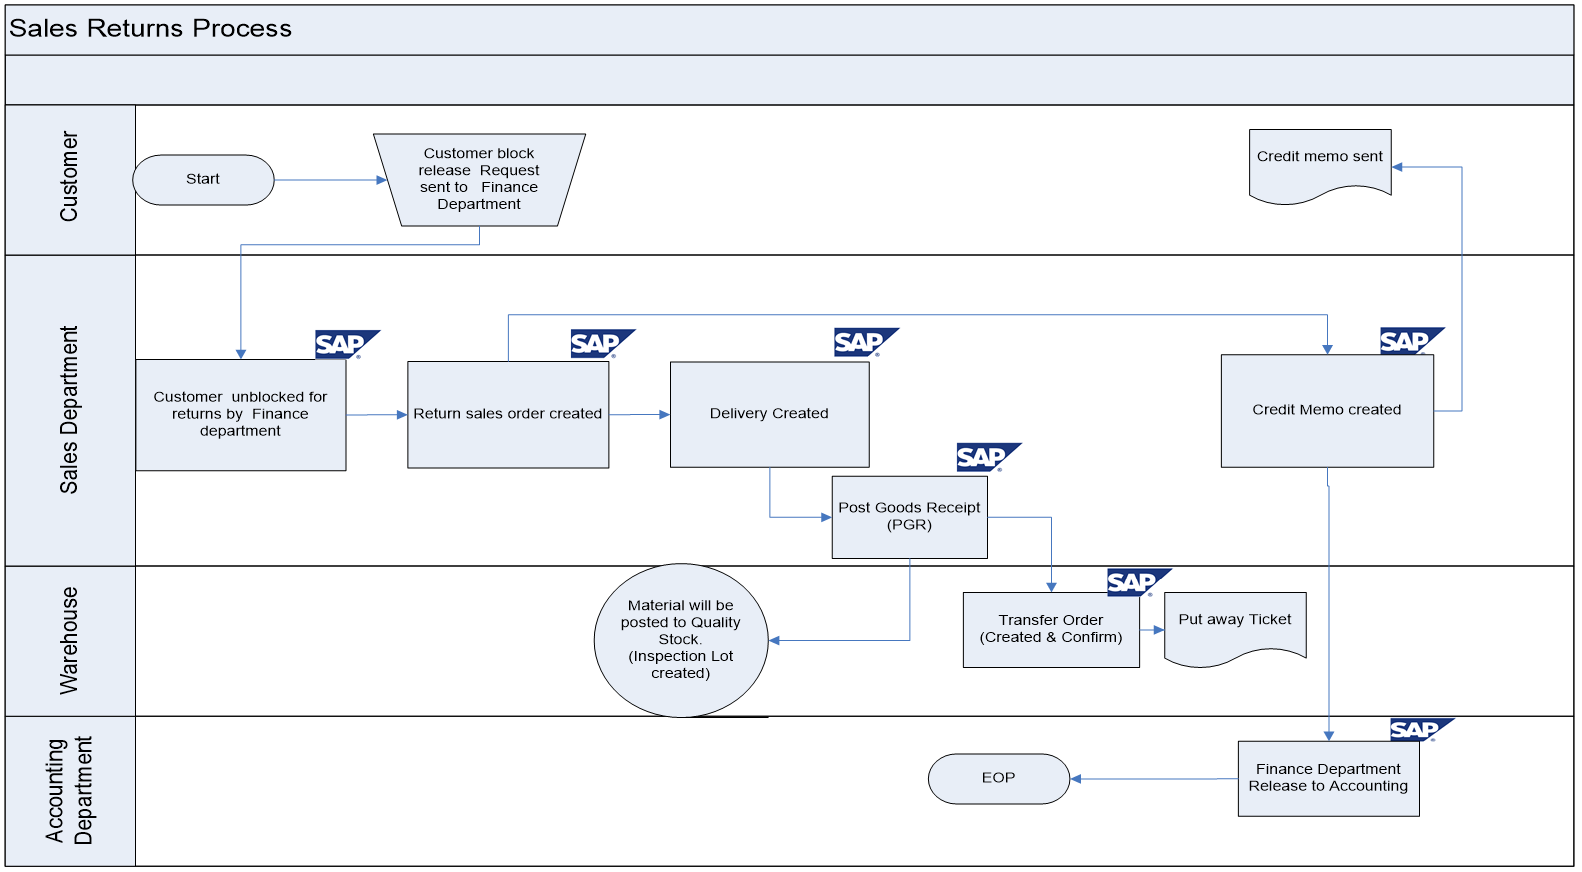 Sap sd business blueprint export sales return process scenario export sales return process flow diagram in sap sd malvernweather